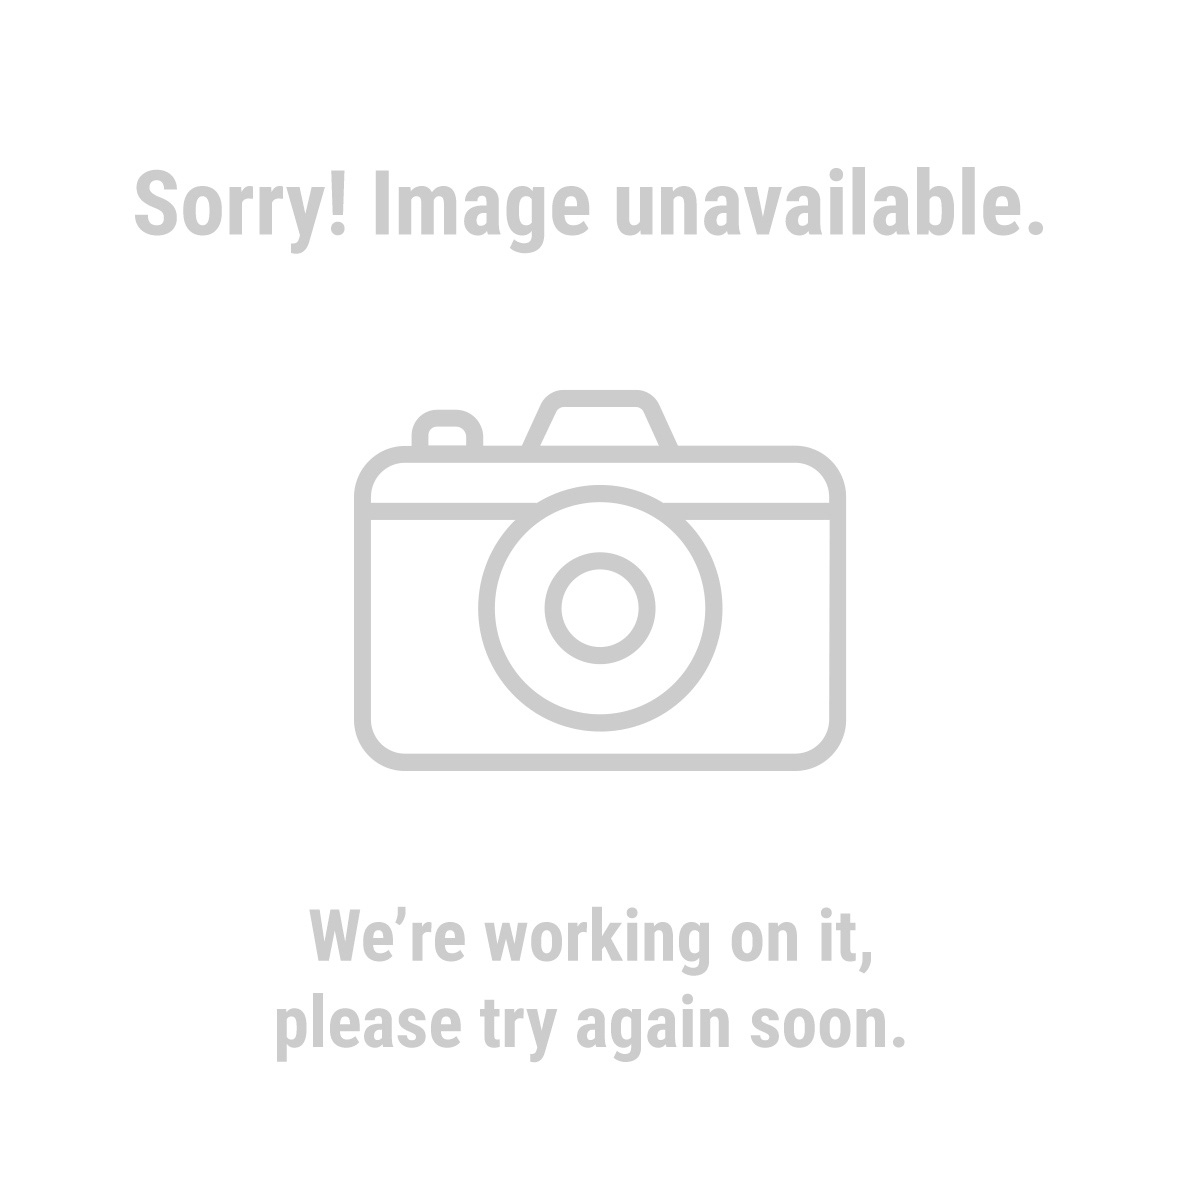 Chicago Electric Welding Systems 93793 140 Amp Flux Wire Welder with Wheels